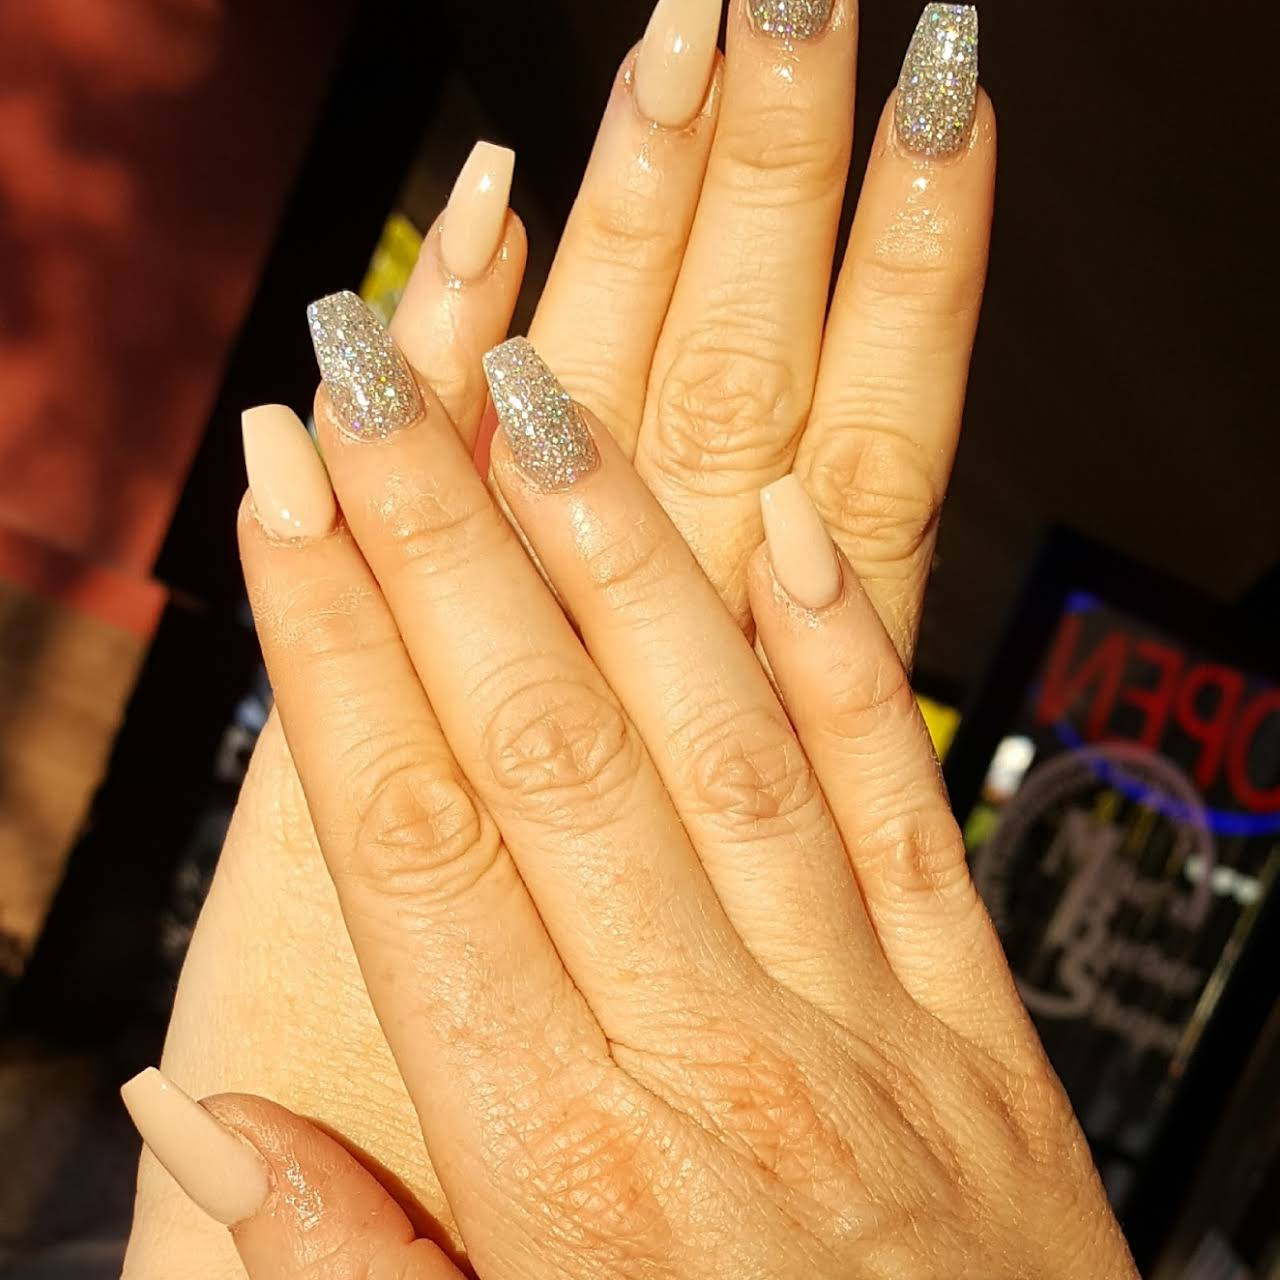 T Nail Lounge - Come see us for all your nail art designs!